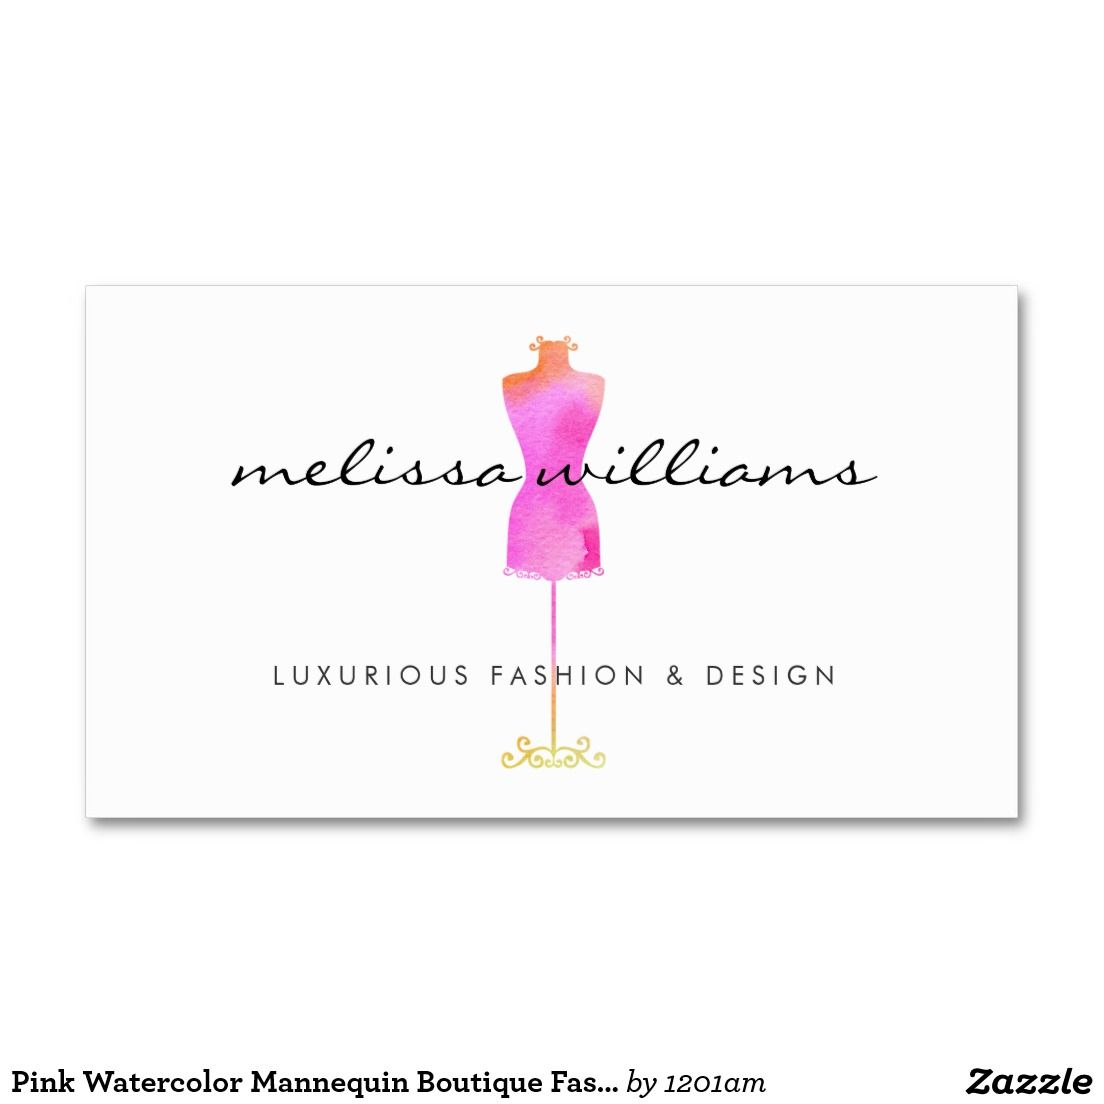 Pink watercolor dress mannequin fashion boutique business card pink watercolor dress mannequin customizable business card for boutiques fashion designers stylists fashion magicingreecefo Images